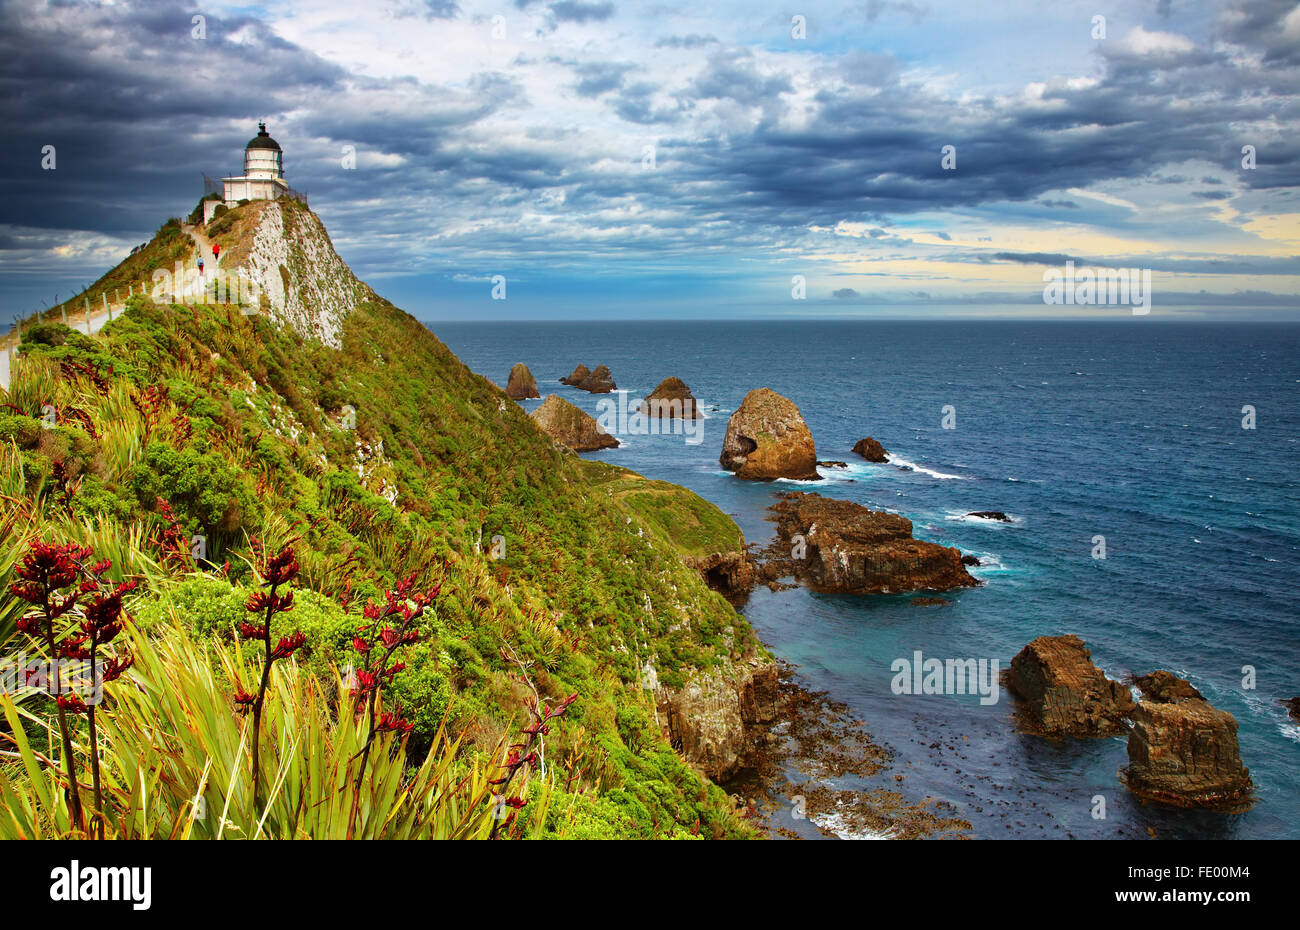 Nugget Point Lighthouse, New Zealand - Stock Image